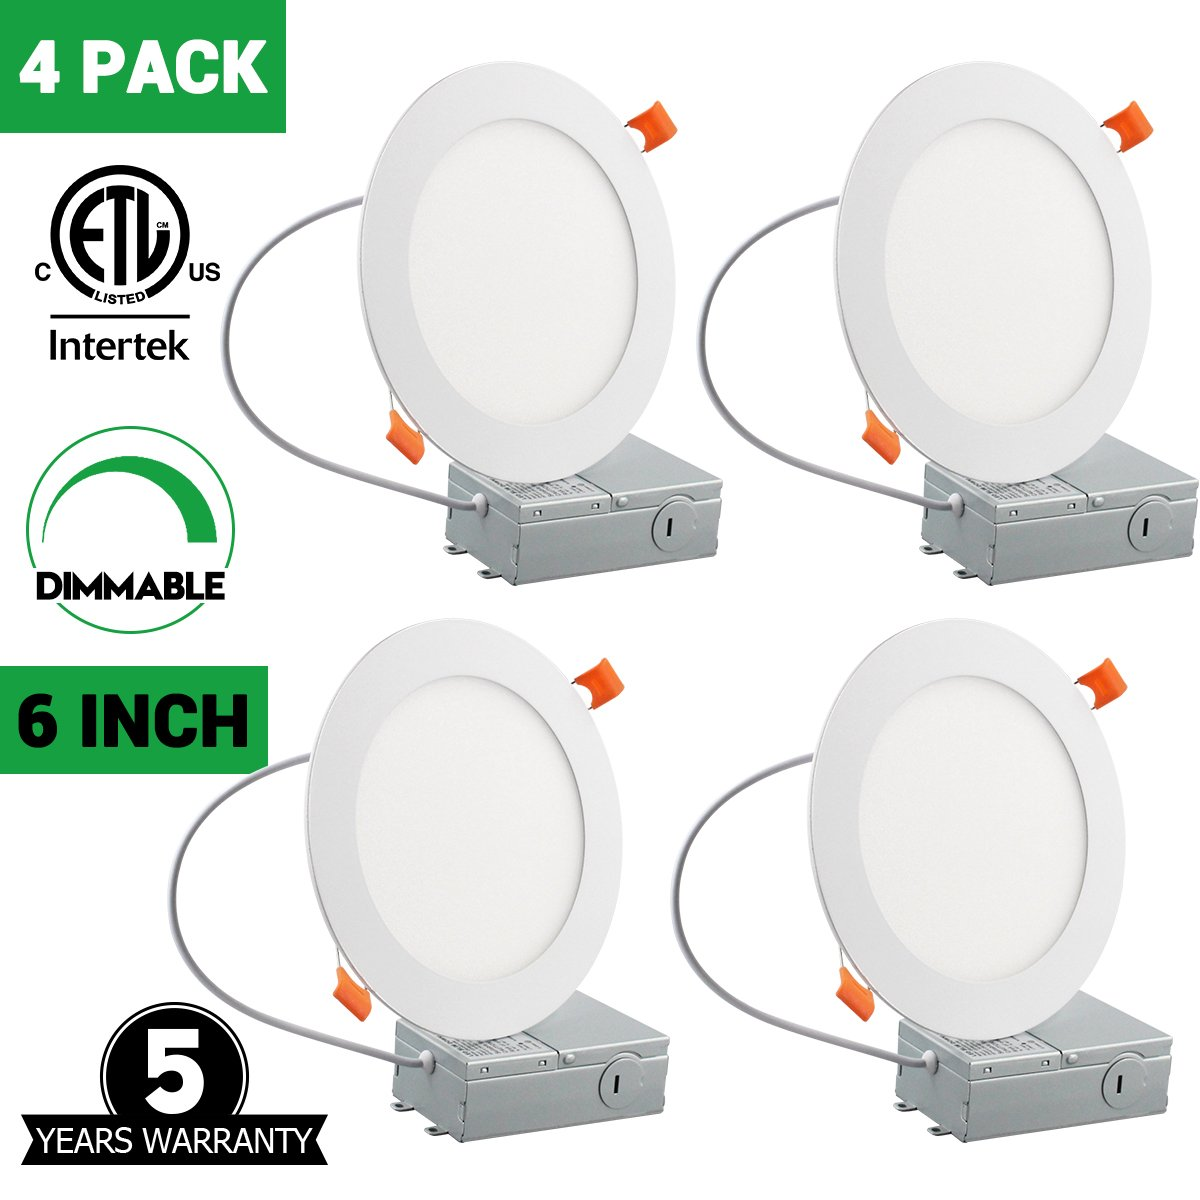 12W 6'' Ultra-thin Recessed Low Profile Slim Panel Light with Junction Box, 100W Equivalent Dimmable Airtight Downlight, 950lm 3000K Warm White, ETL-listed, 4 Pack by TDLOL (Image #1)